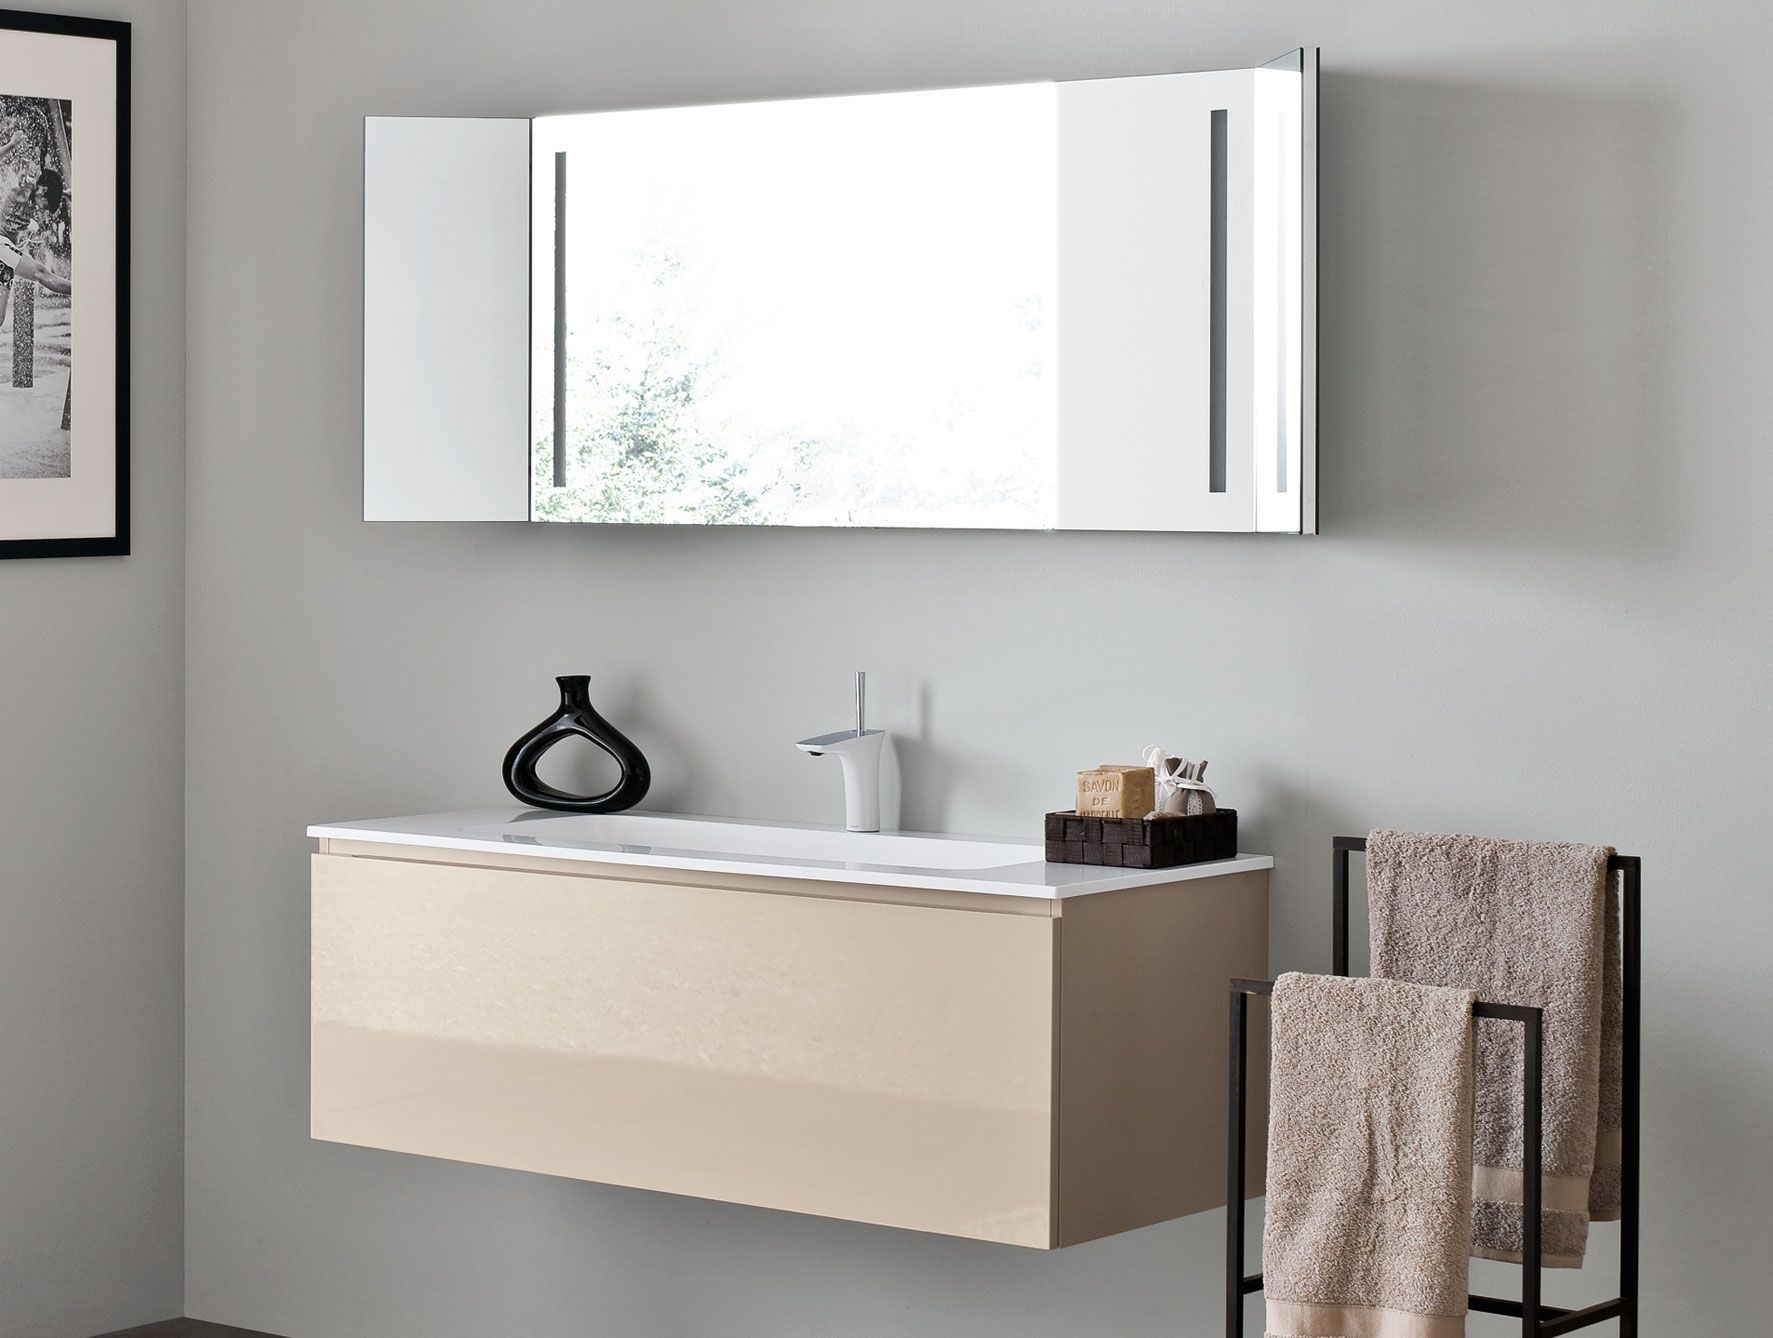 Image Result For Pictures Of Two 48 Inch Floating Vanities Side By In Bathroom